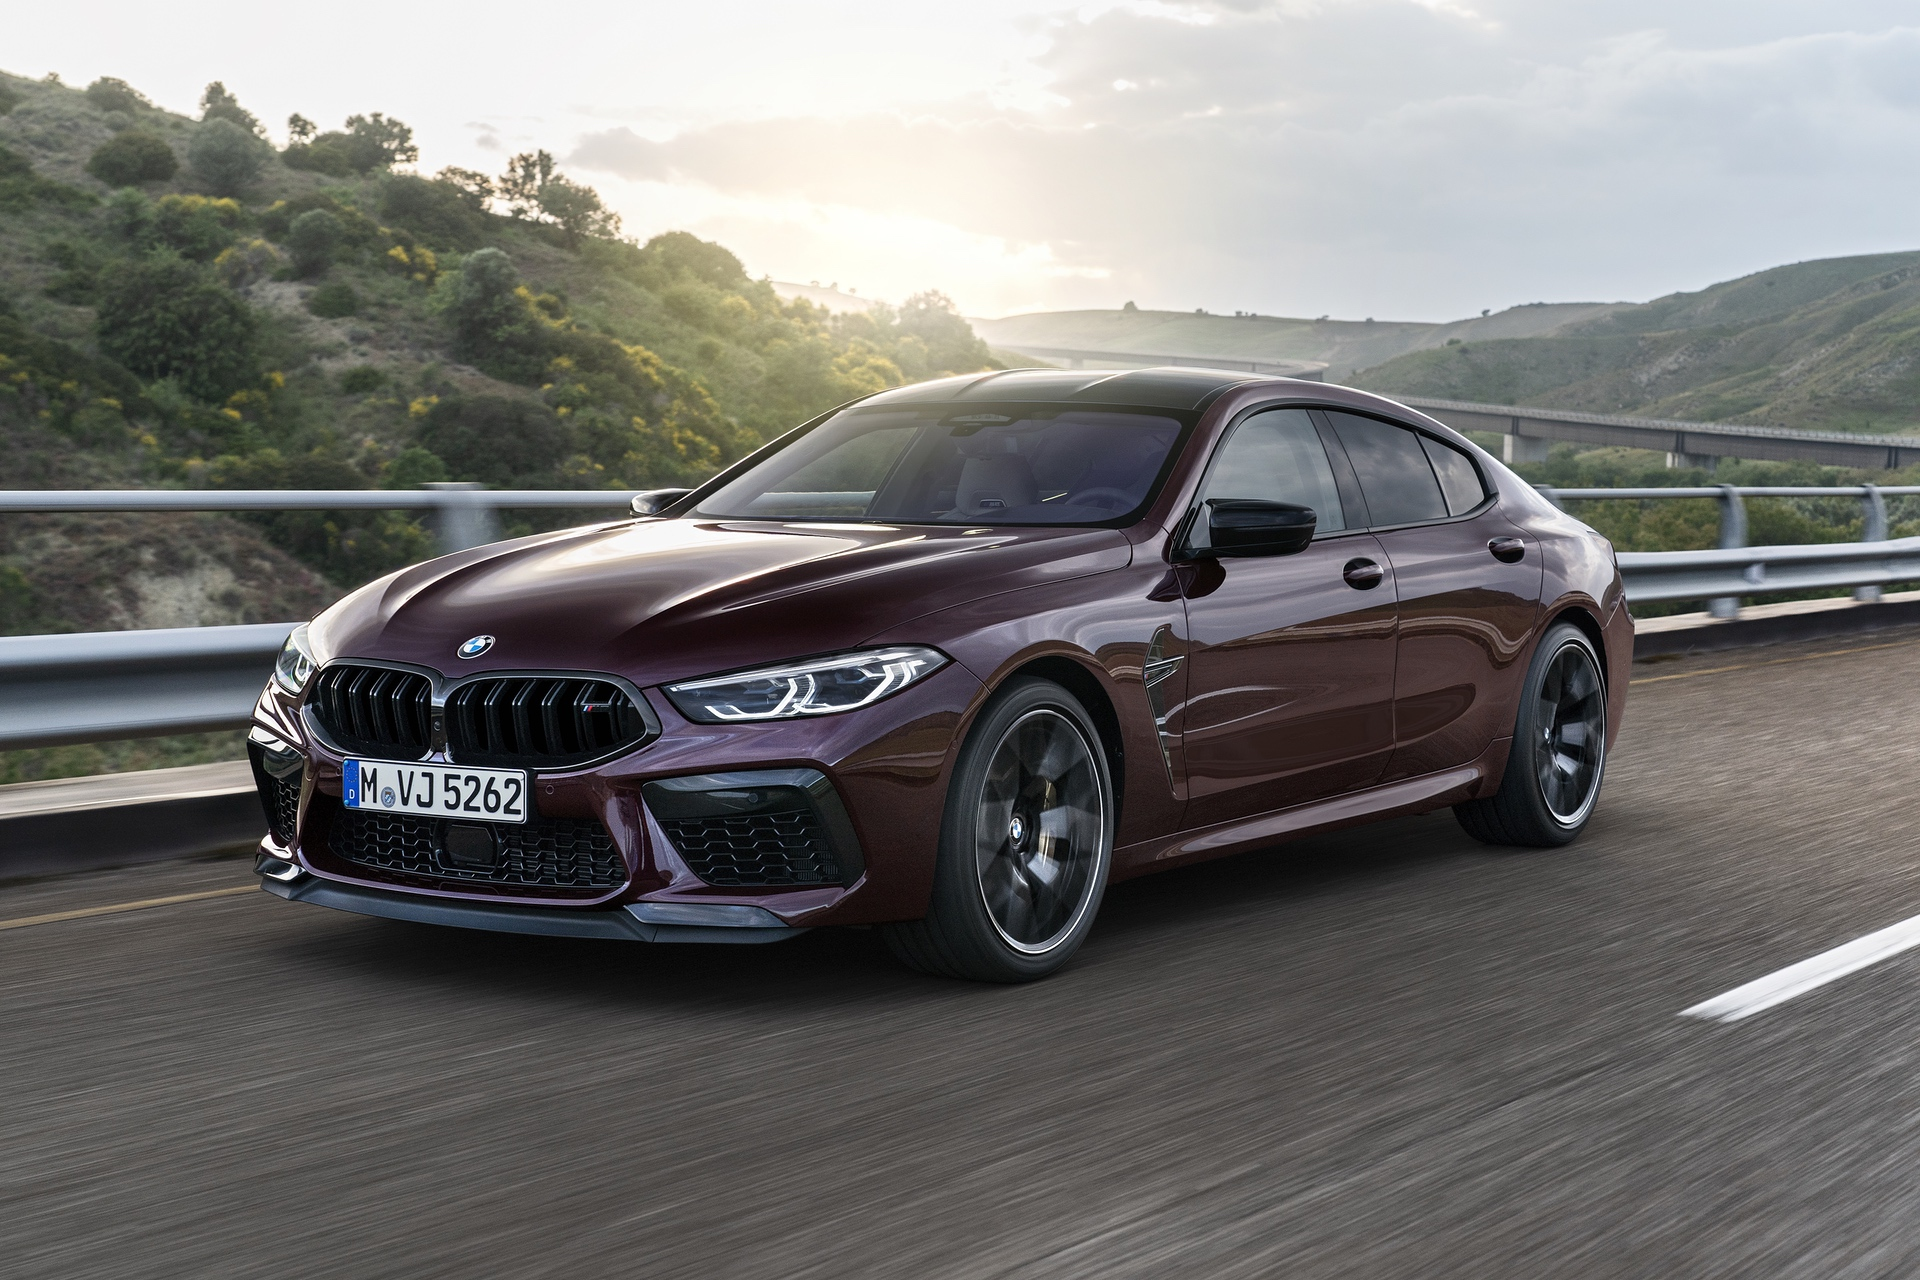 BMW M8 Gran Coupe exterior images 21